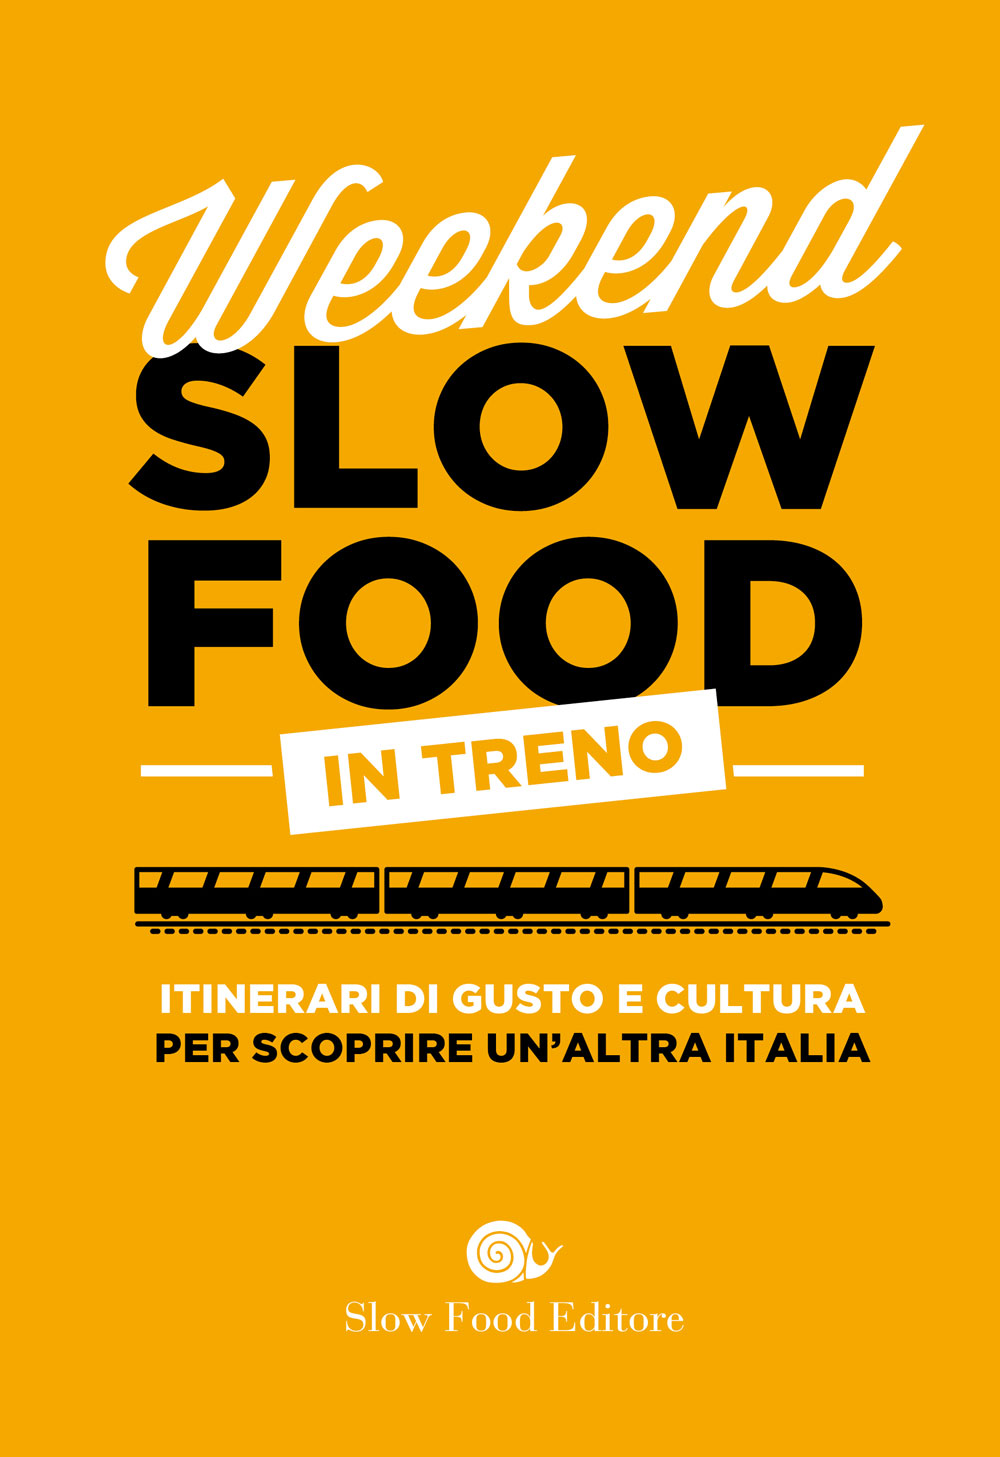 Weekend Slow Food in treno. Itinerari di gusto e cultura per scoprire un'altra Italia